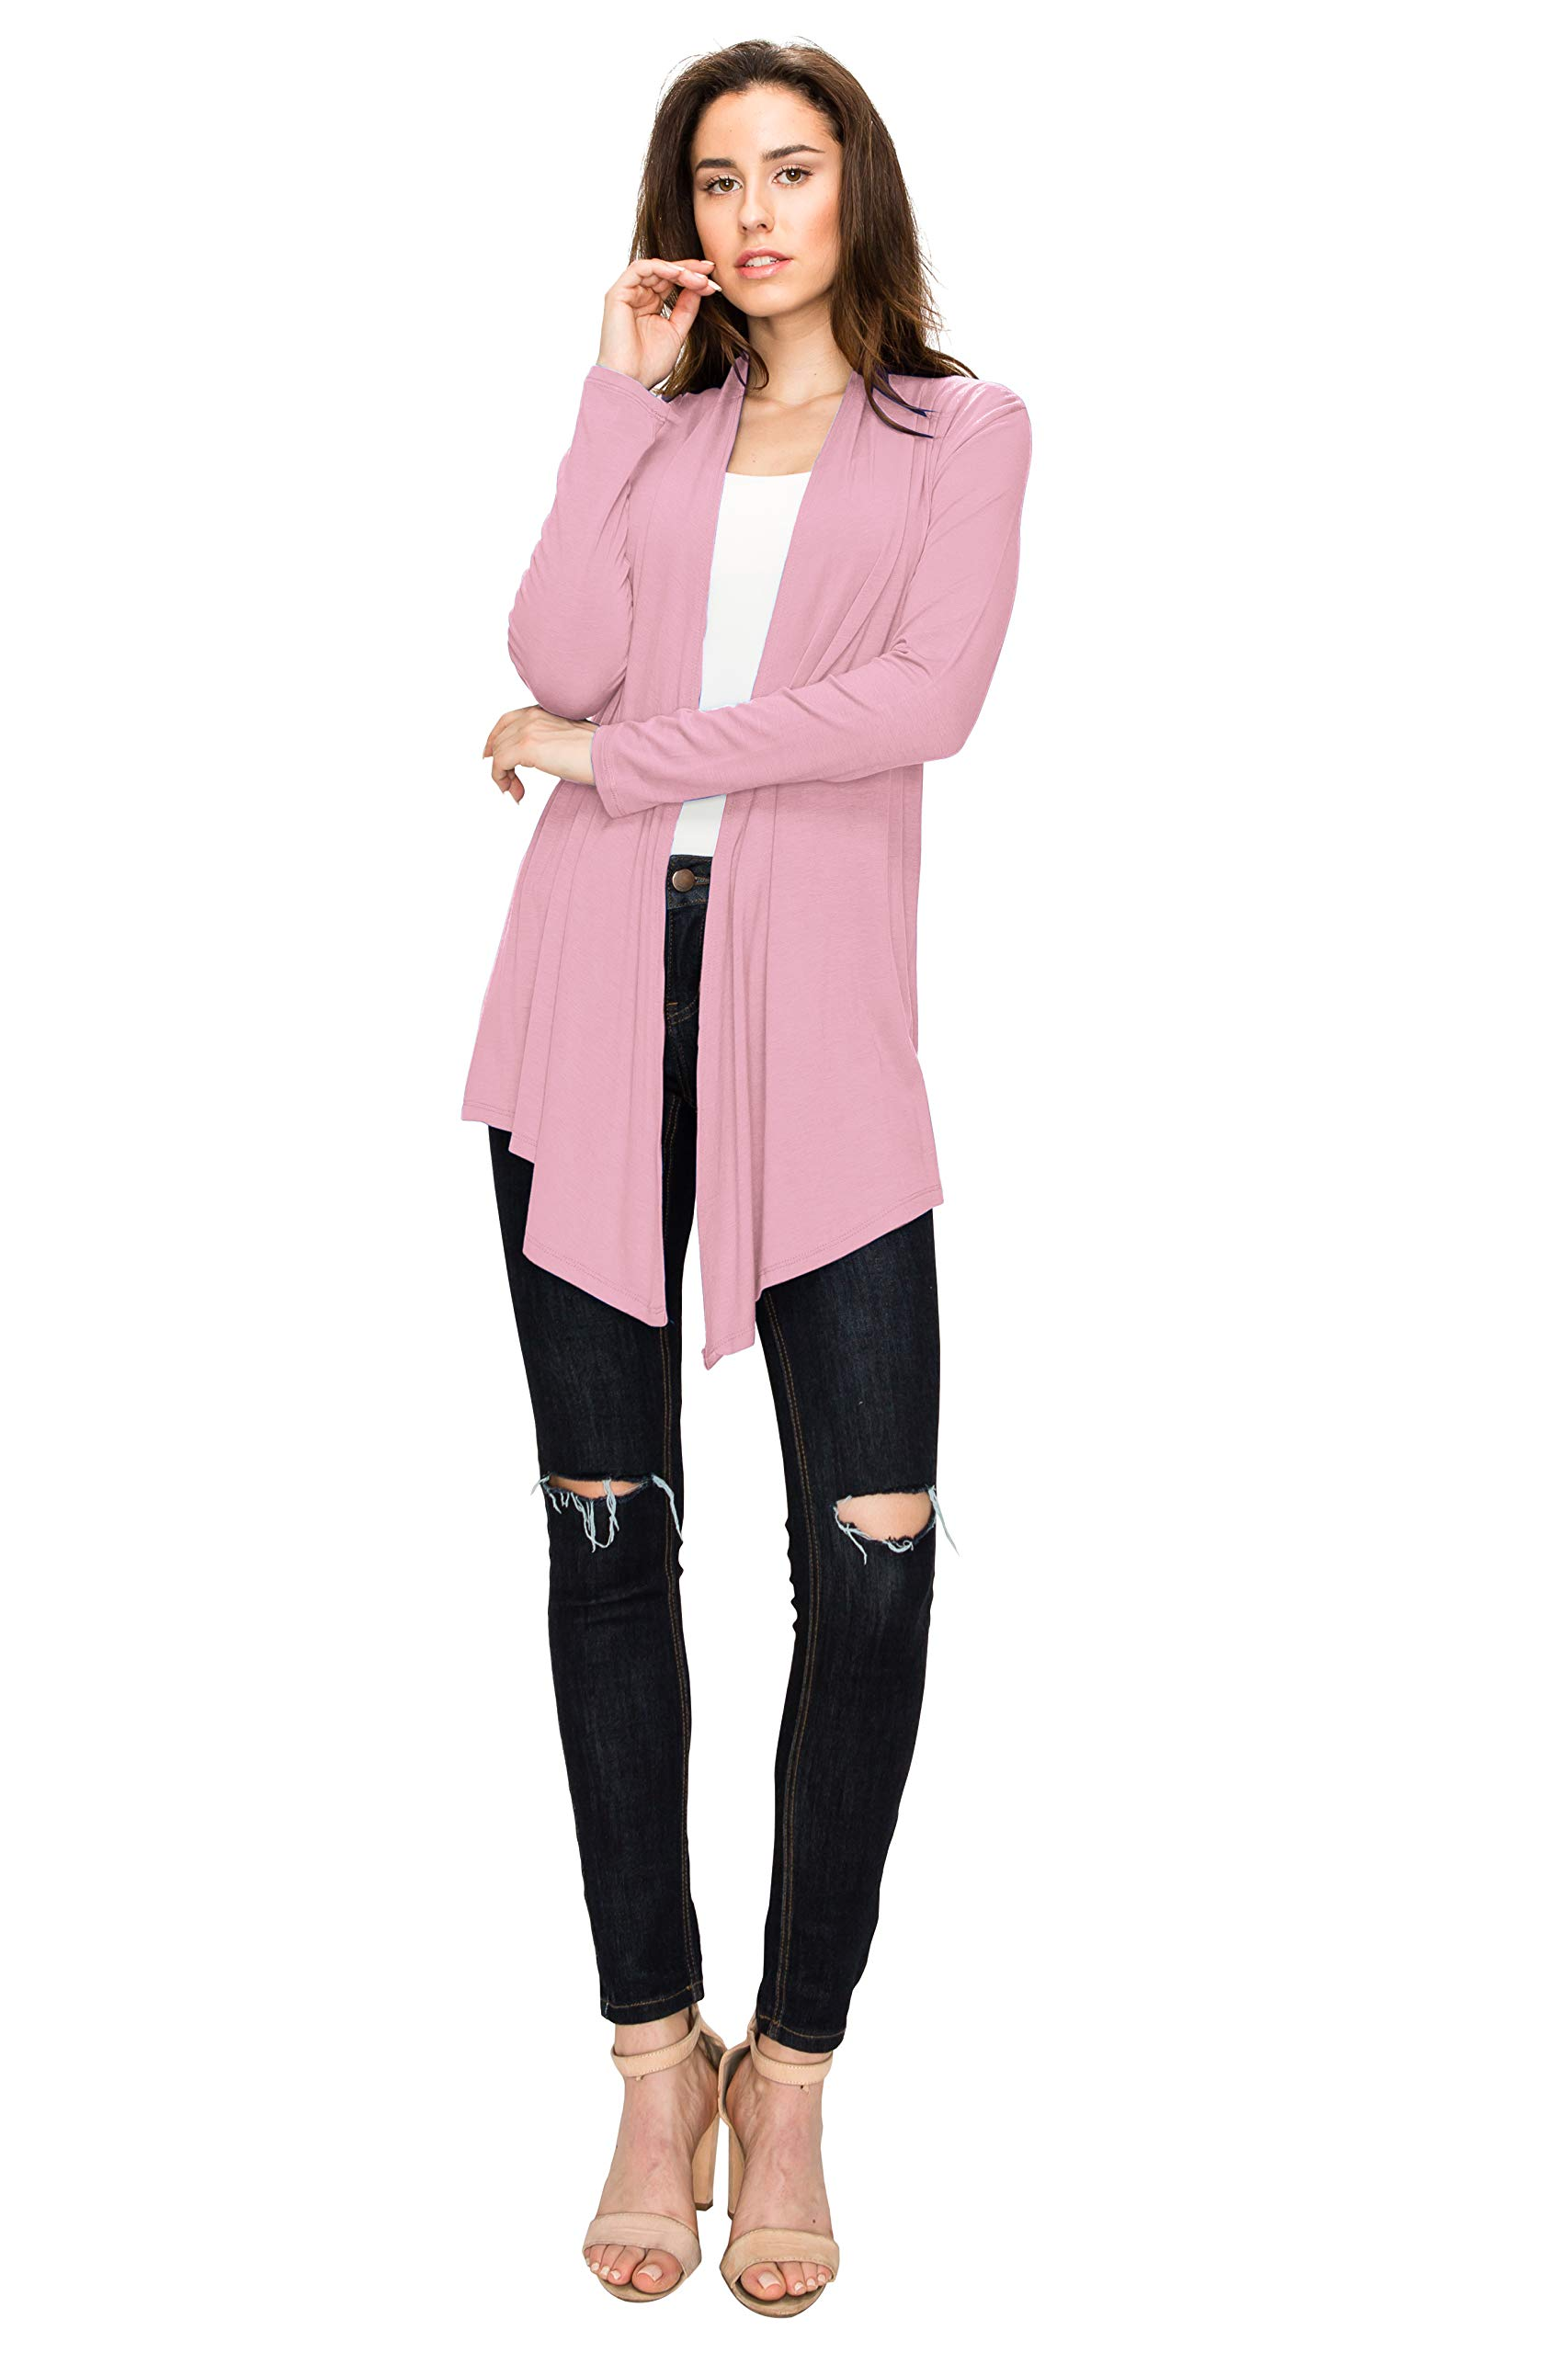 WSK850 Womens Draped Open- Front Cardigan XXL Pink by Lock and Love (Image #4)